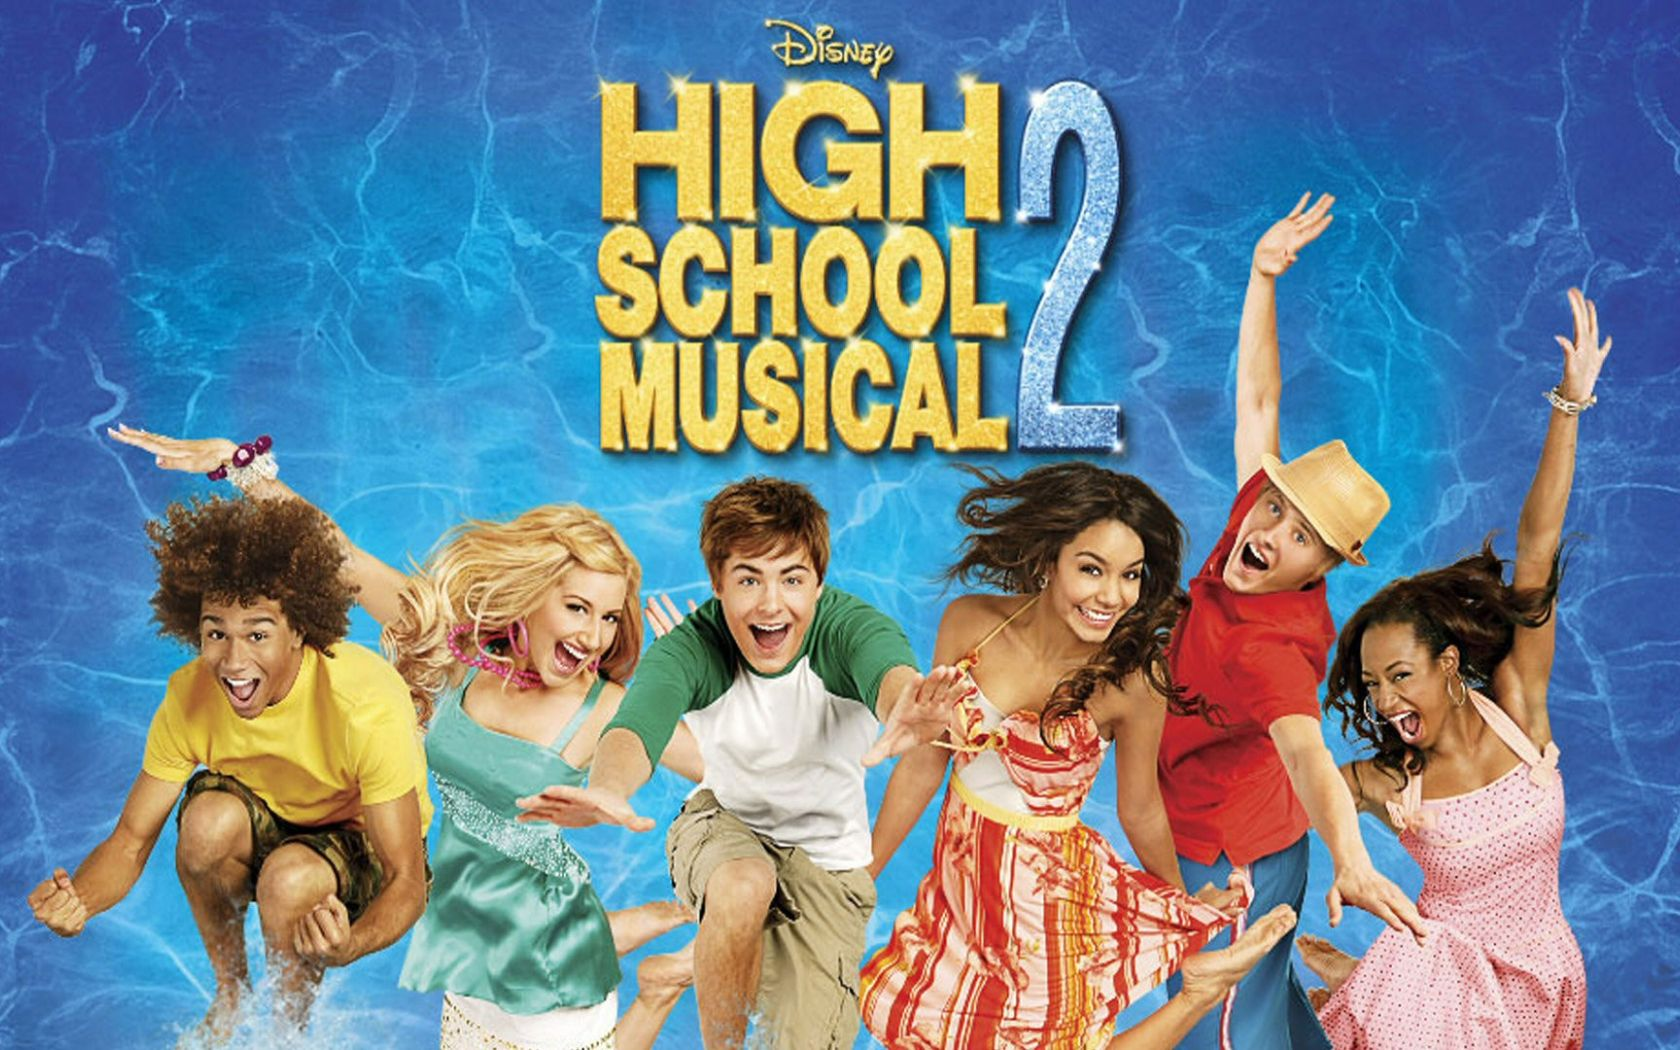 High School Musical 2 Wallpapers - Top Free High School Musical 2  Backgrounds - WallpaperAccess